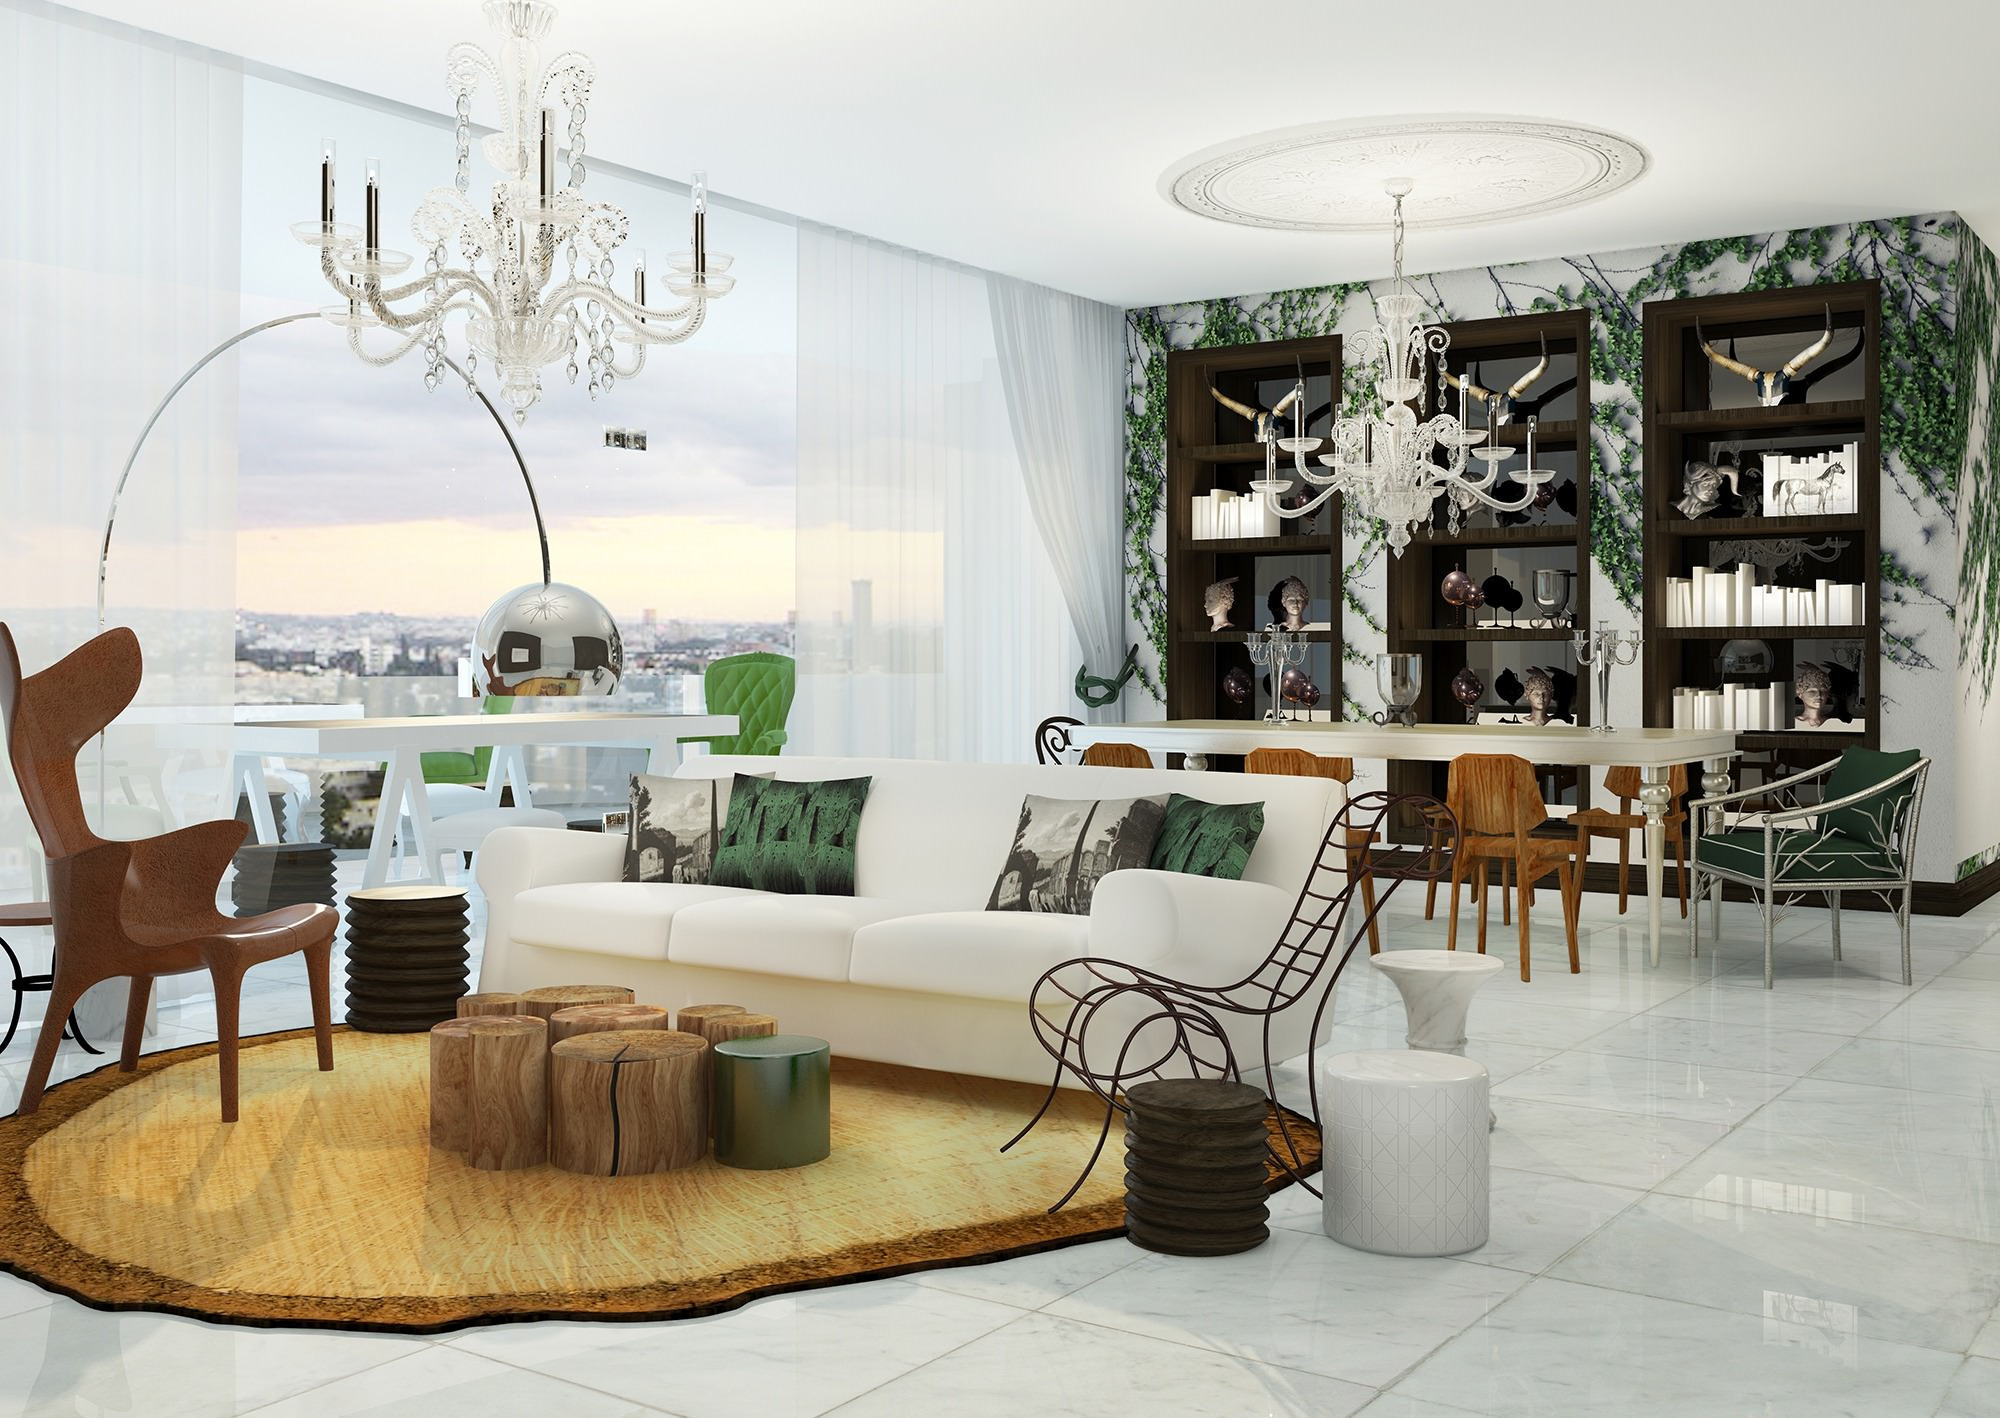 Interior Designers: The Top 10 Designers in London You Need to Know interior designers Interior Designers: The Top 10 Designers in London You Need to Know Nature Lounge YOO on the Horizon Bangalore India YOO Nordelta Buenos Aires Argentina YOO inspired by Starck